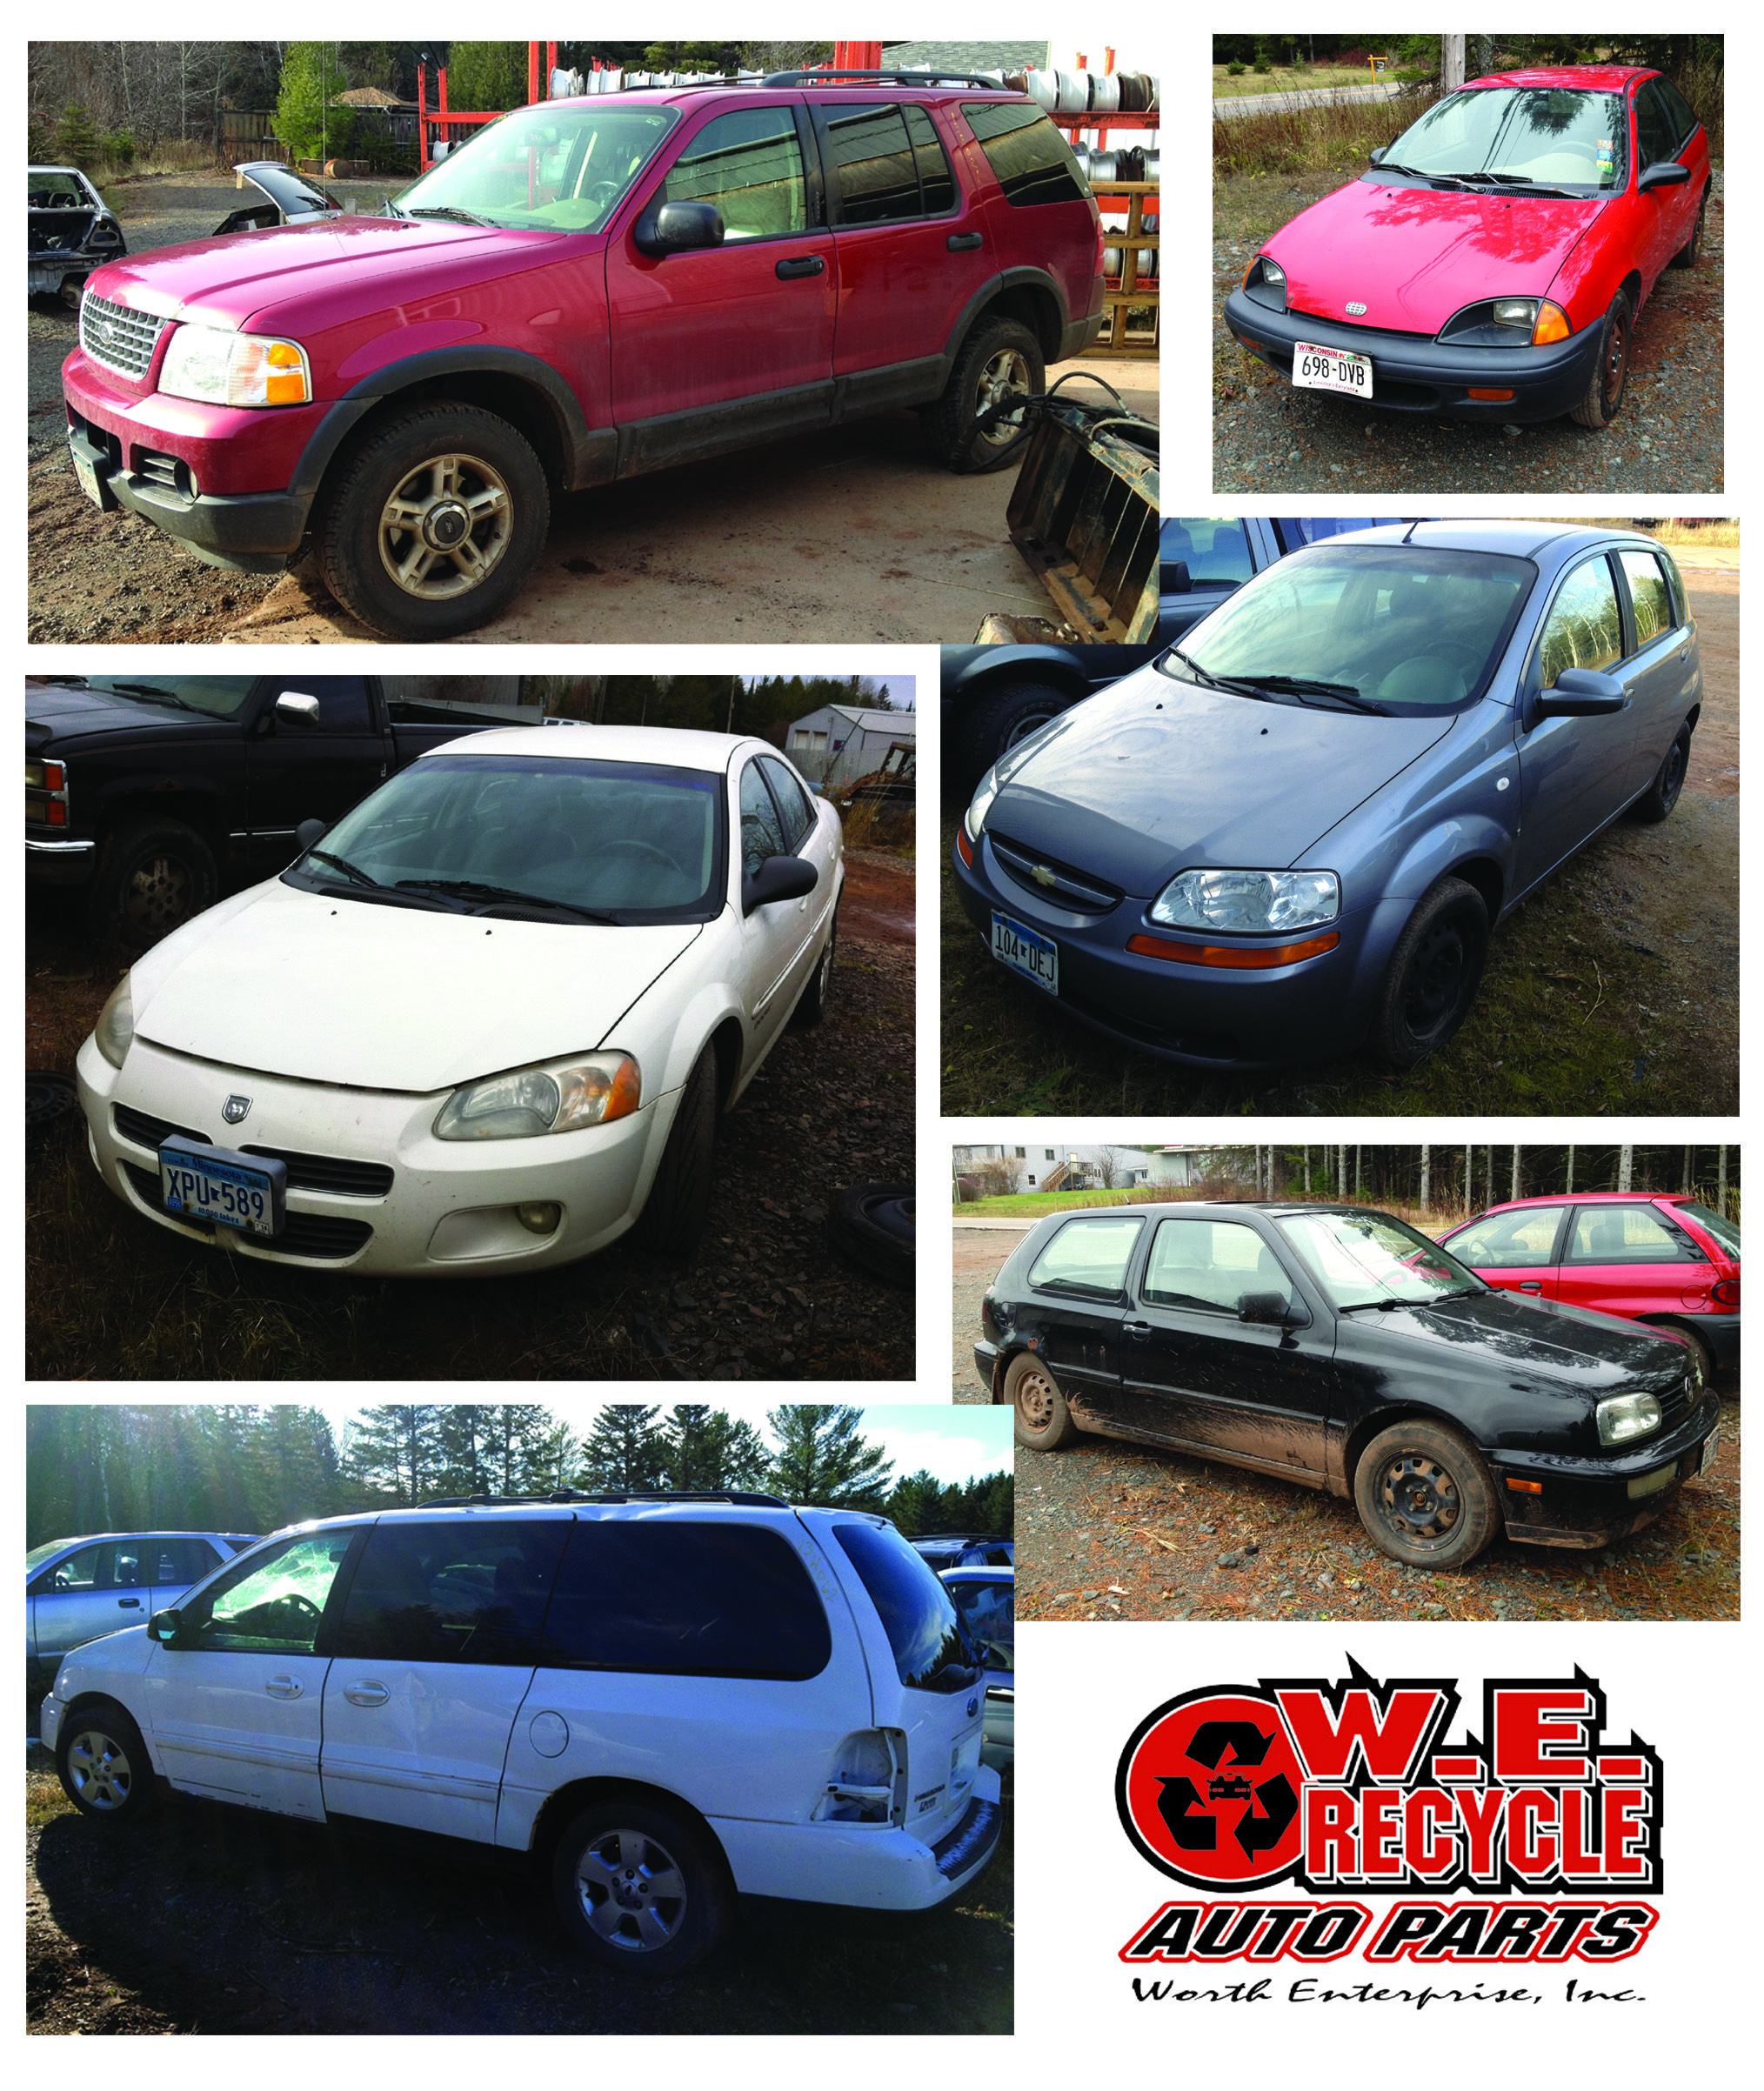 New Inventory 2003 Ford Explorer 1996 Geo Metro 2001 Dodge Stratus 2008 Chevy Aveo 2005 Ford Freestar 199 Dodge Stratus Used Car Parts Ford Explorer